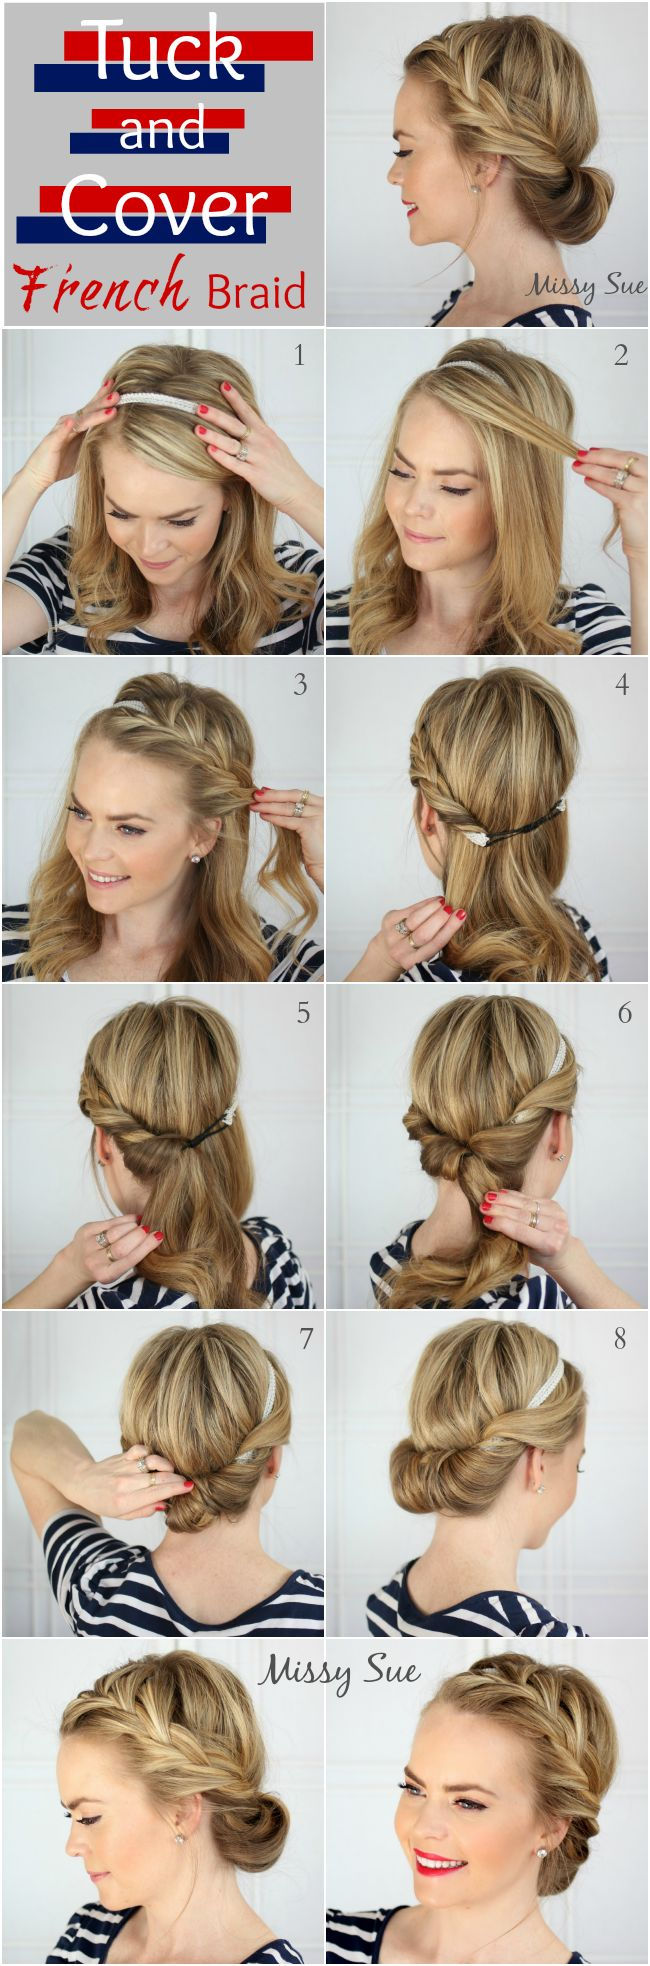 twisted Frech diy braid wedding hairstyles for long hair                                                                                                                                                                                 More